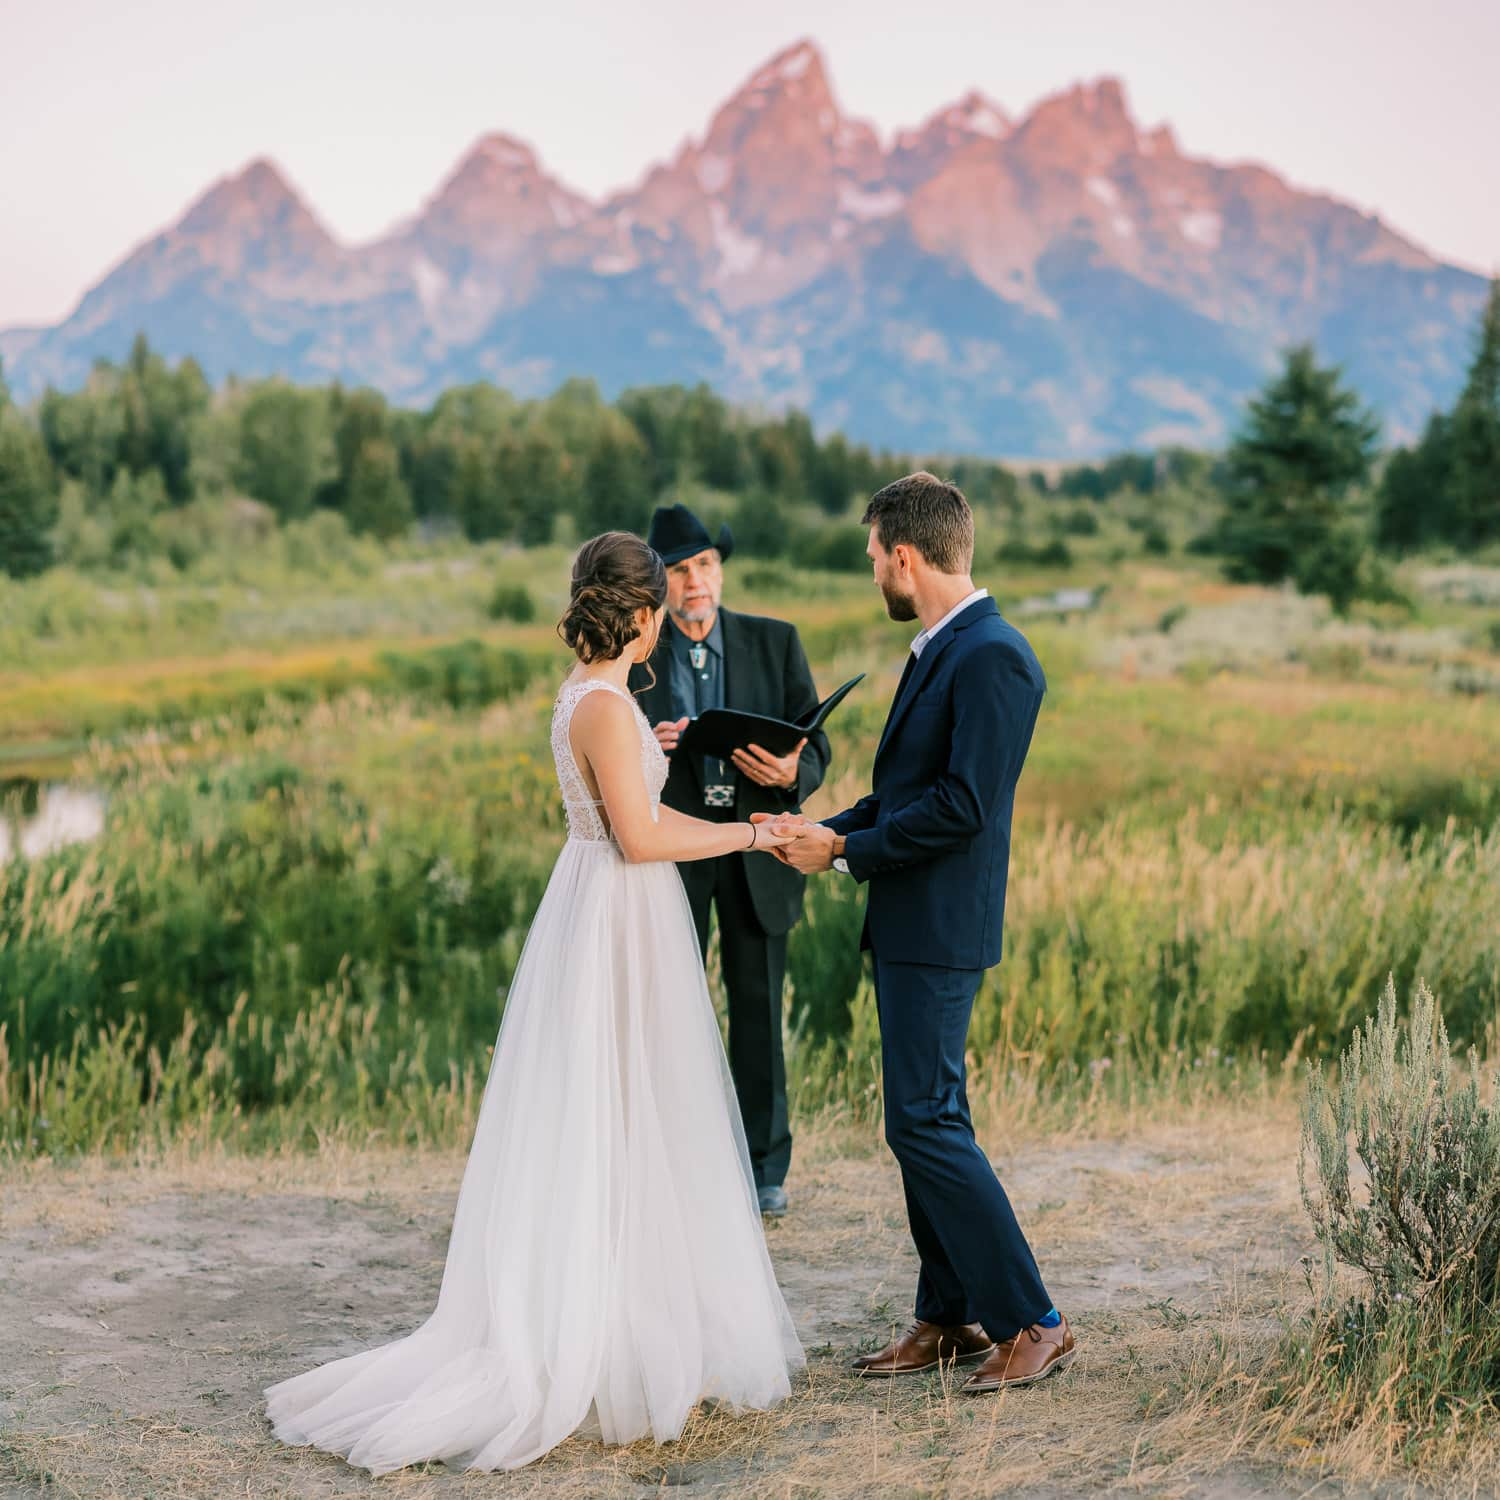 Bride and groom look at officiant during their wedding ceremony in the Tetons.